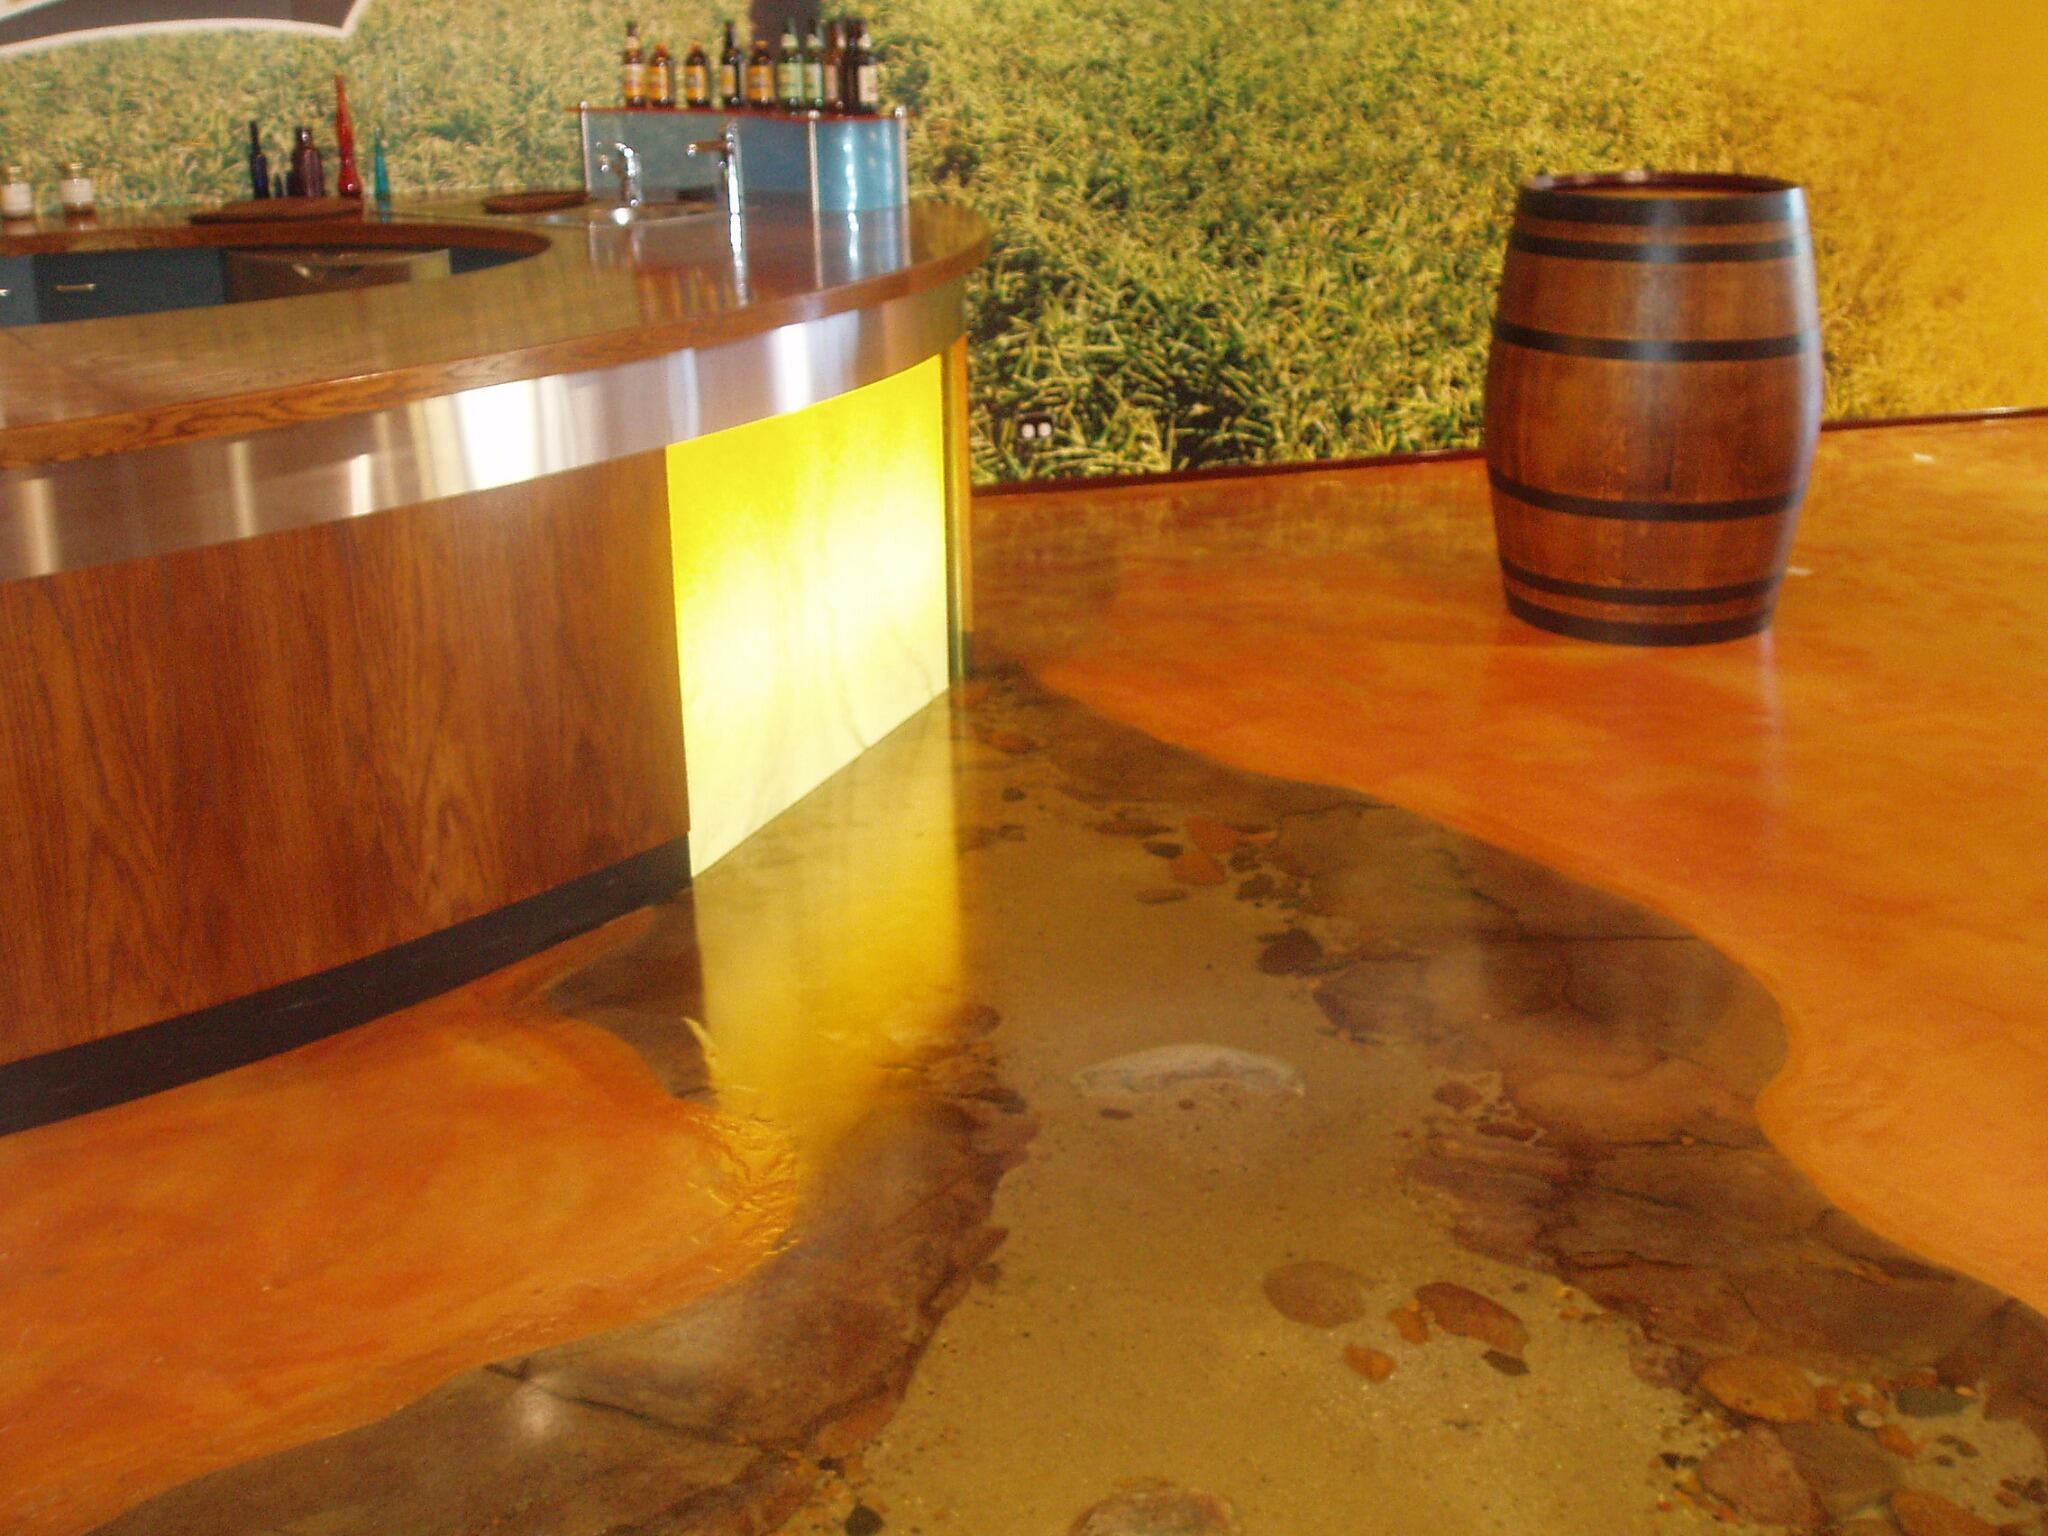 Captivating Award Winning Epoxy Floors Worldwide Recognition Sexyfloors